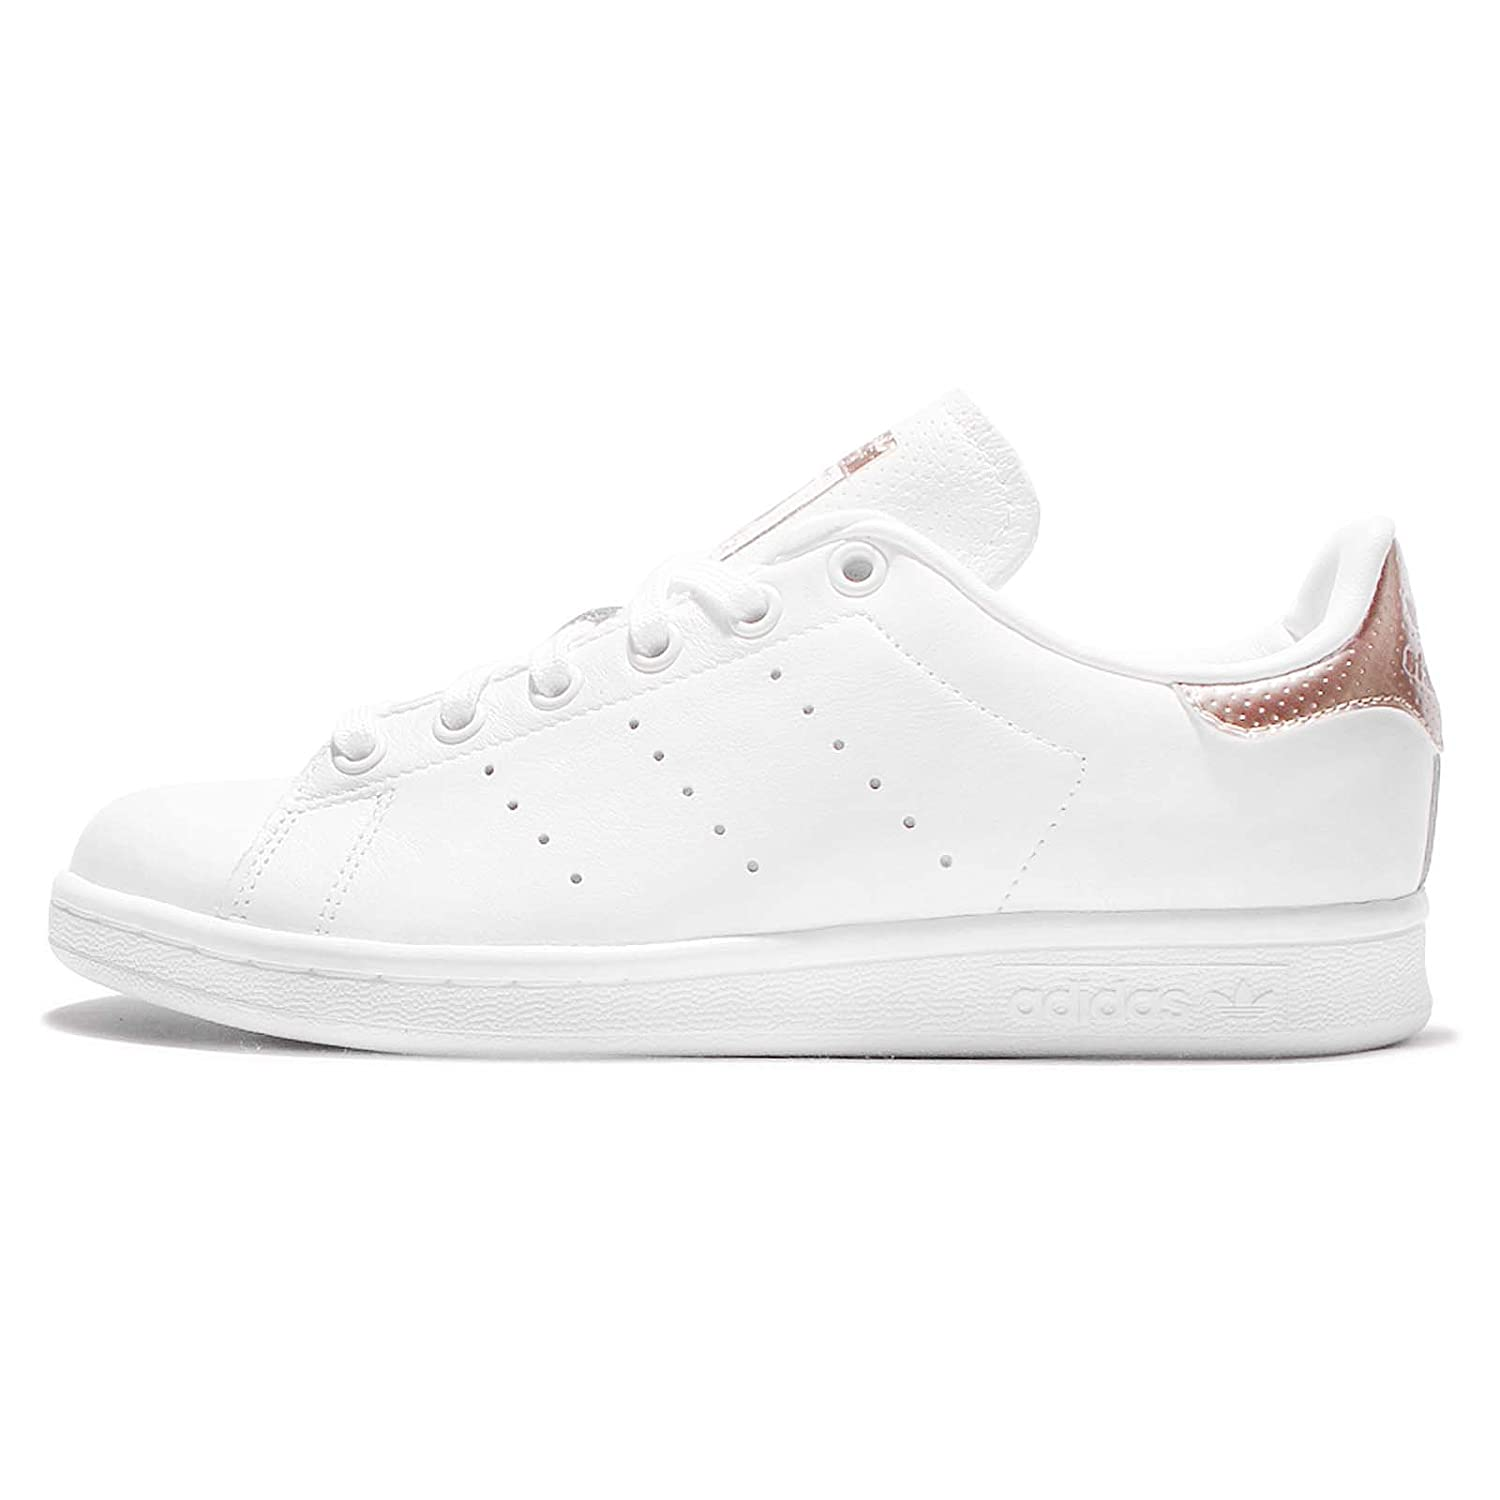 timeless design 38c01 d2f4d Adidas Women's Stan Smith W, Footwear White/Rose Gold, 6.5 ...